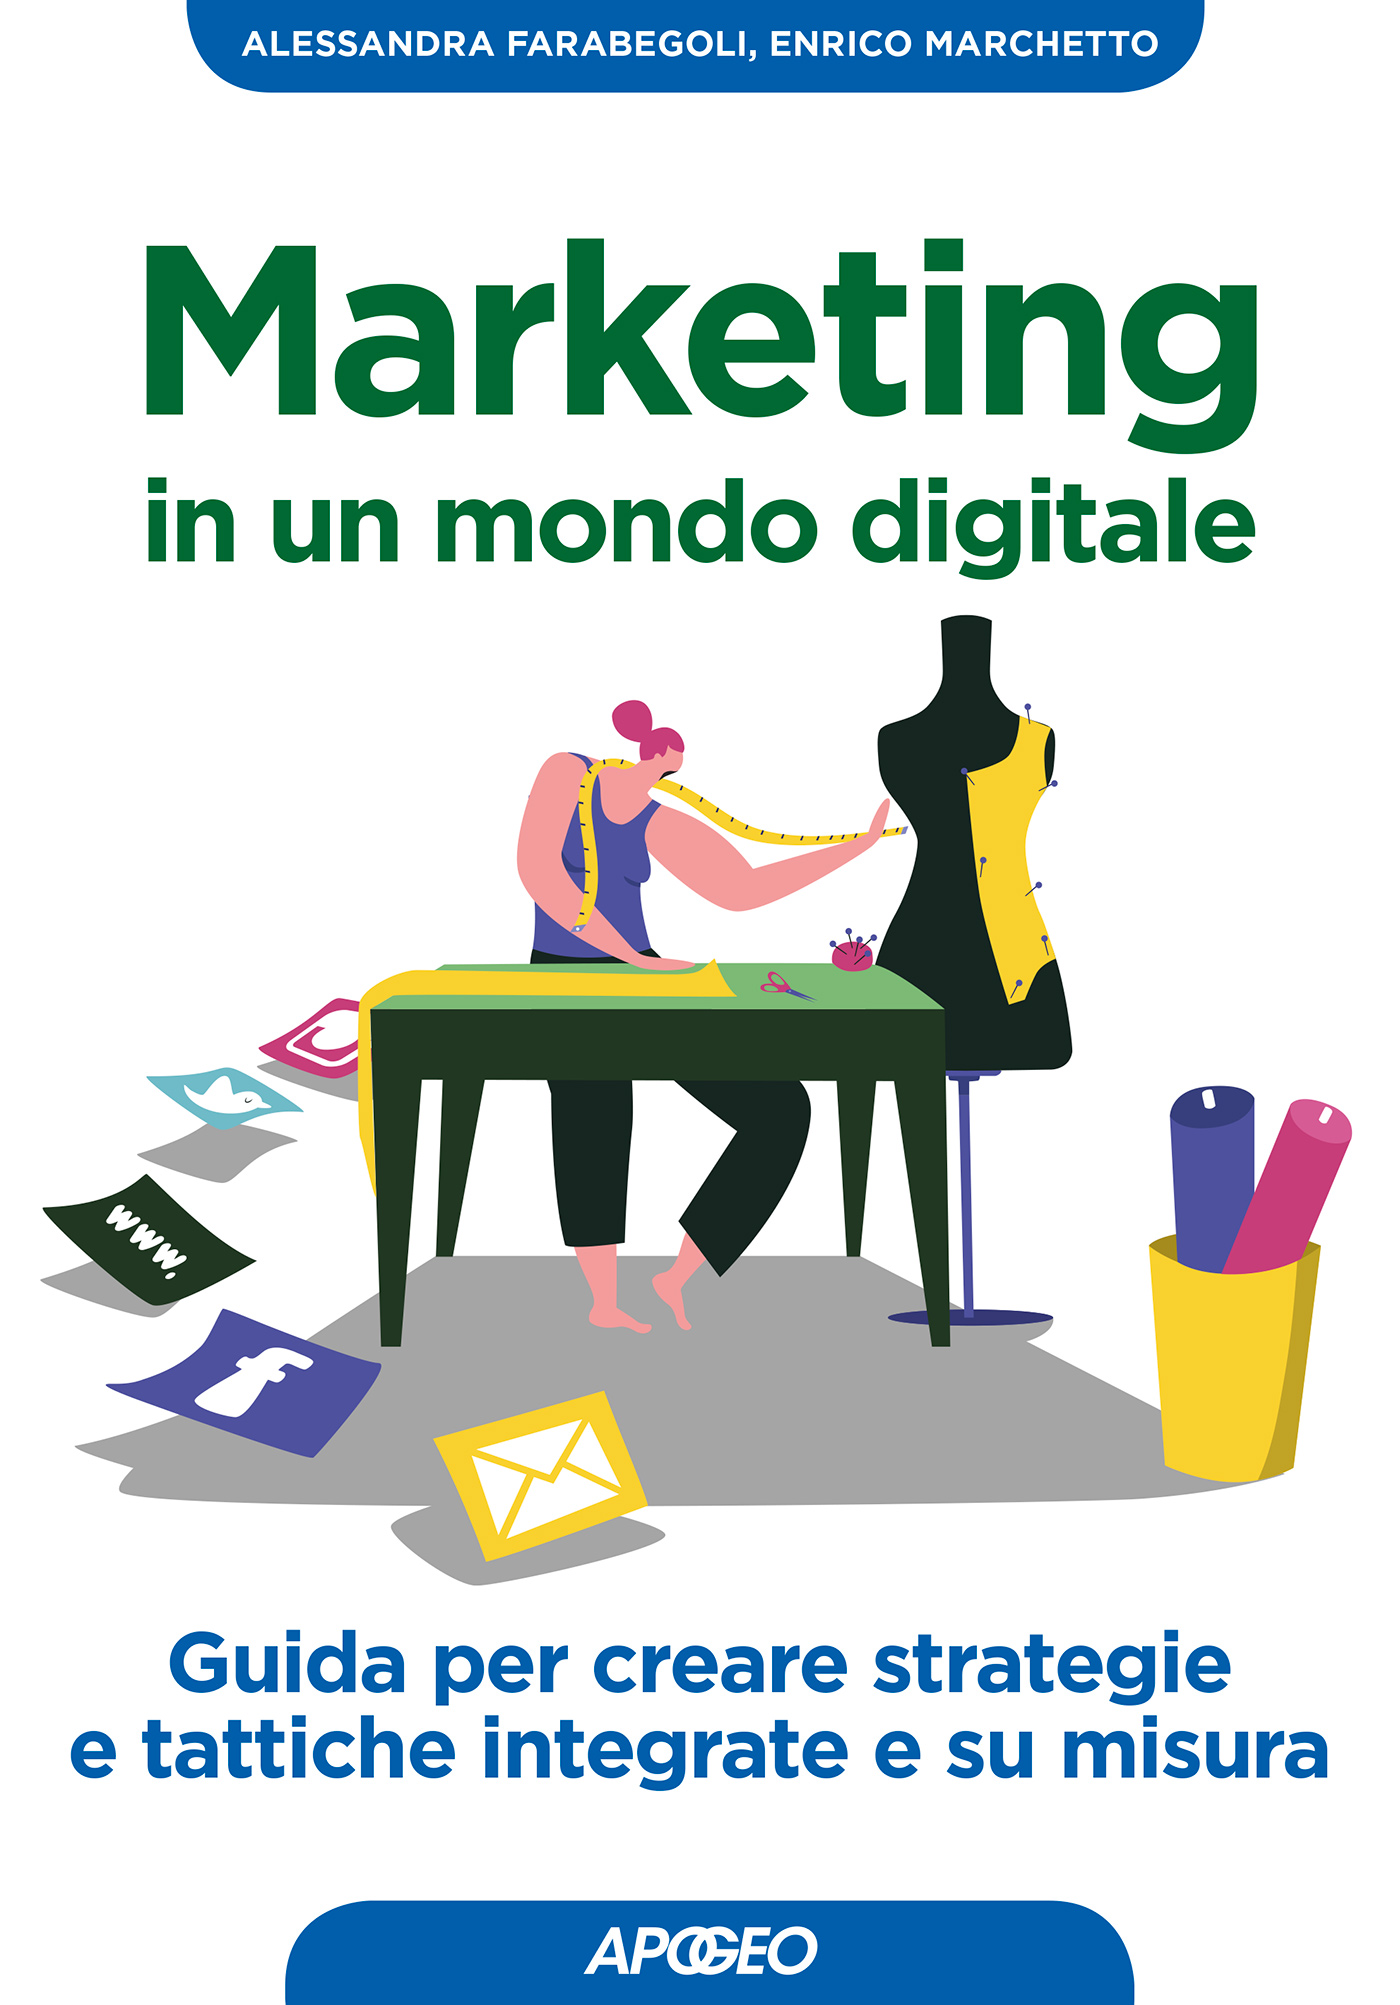 Marketing in un mondo digitale, di Alessandra Farabegoli ed Enrico Marchetto